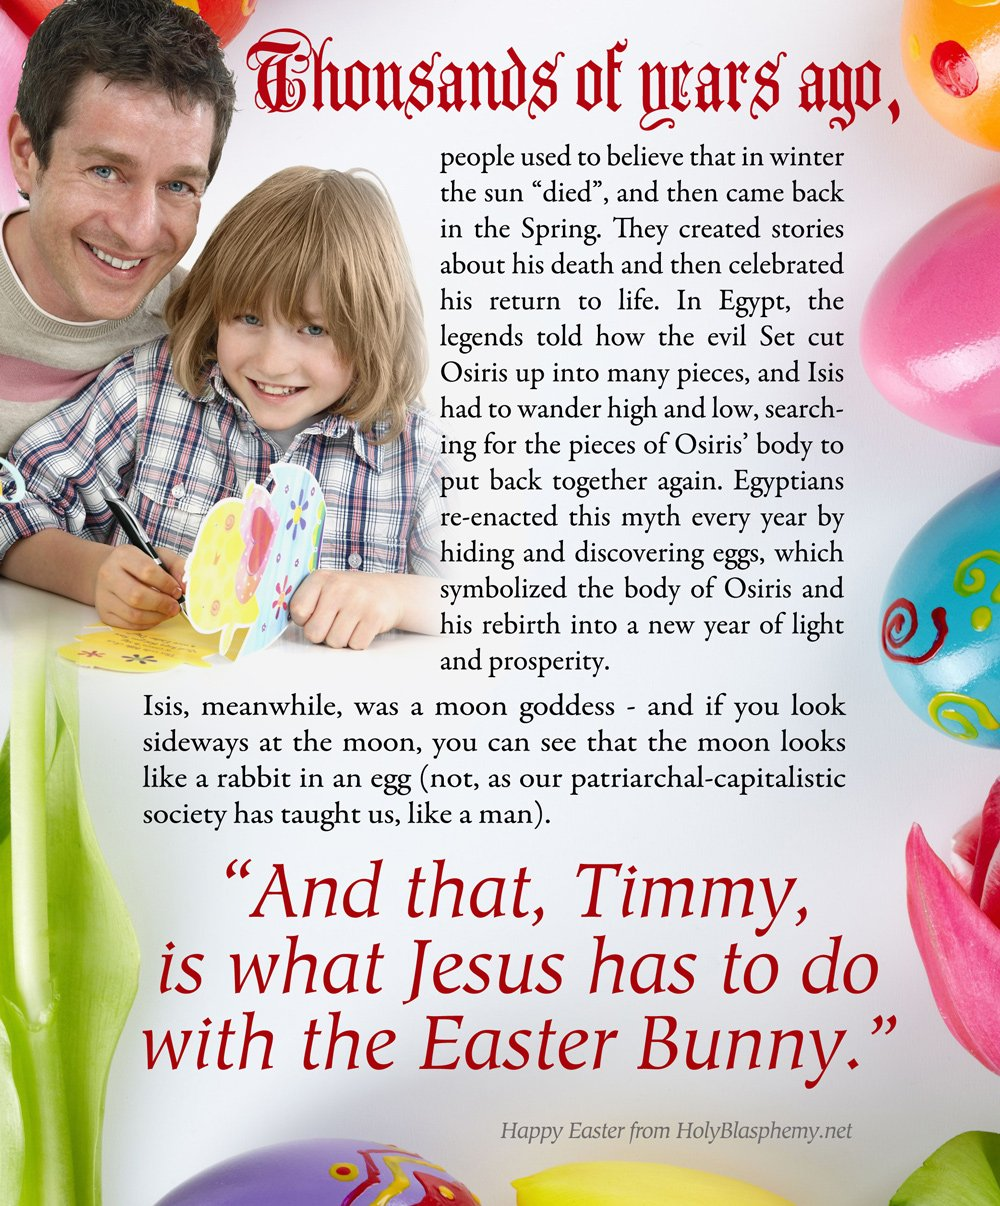 What do Jesus and the Easter Bunny Have in Common?